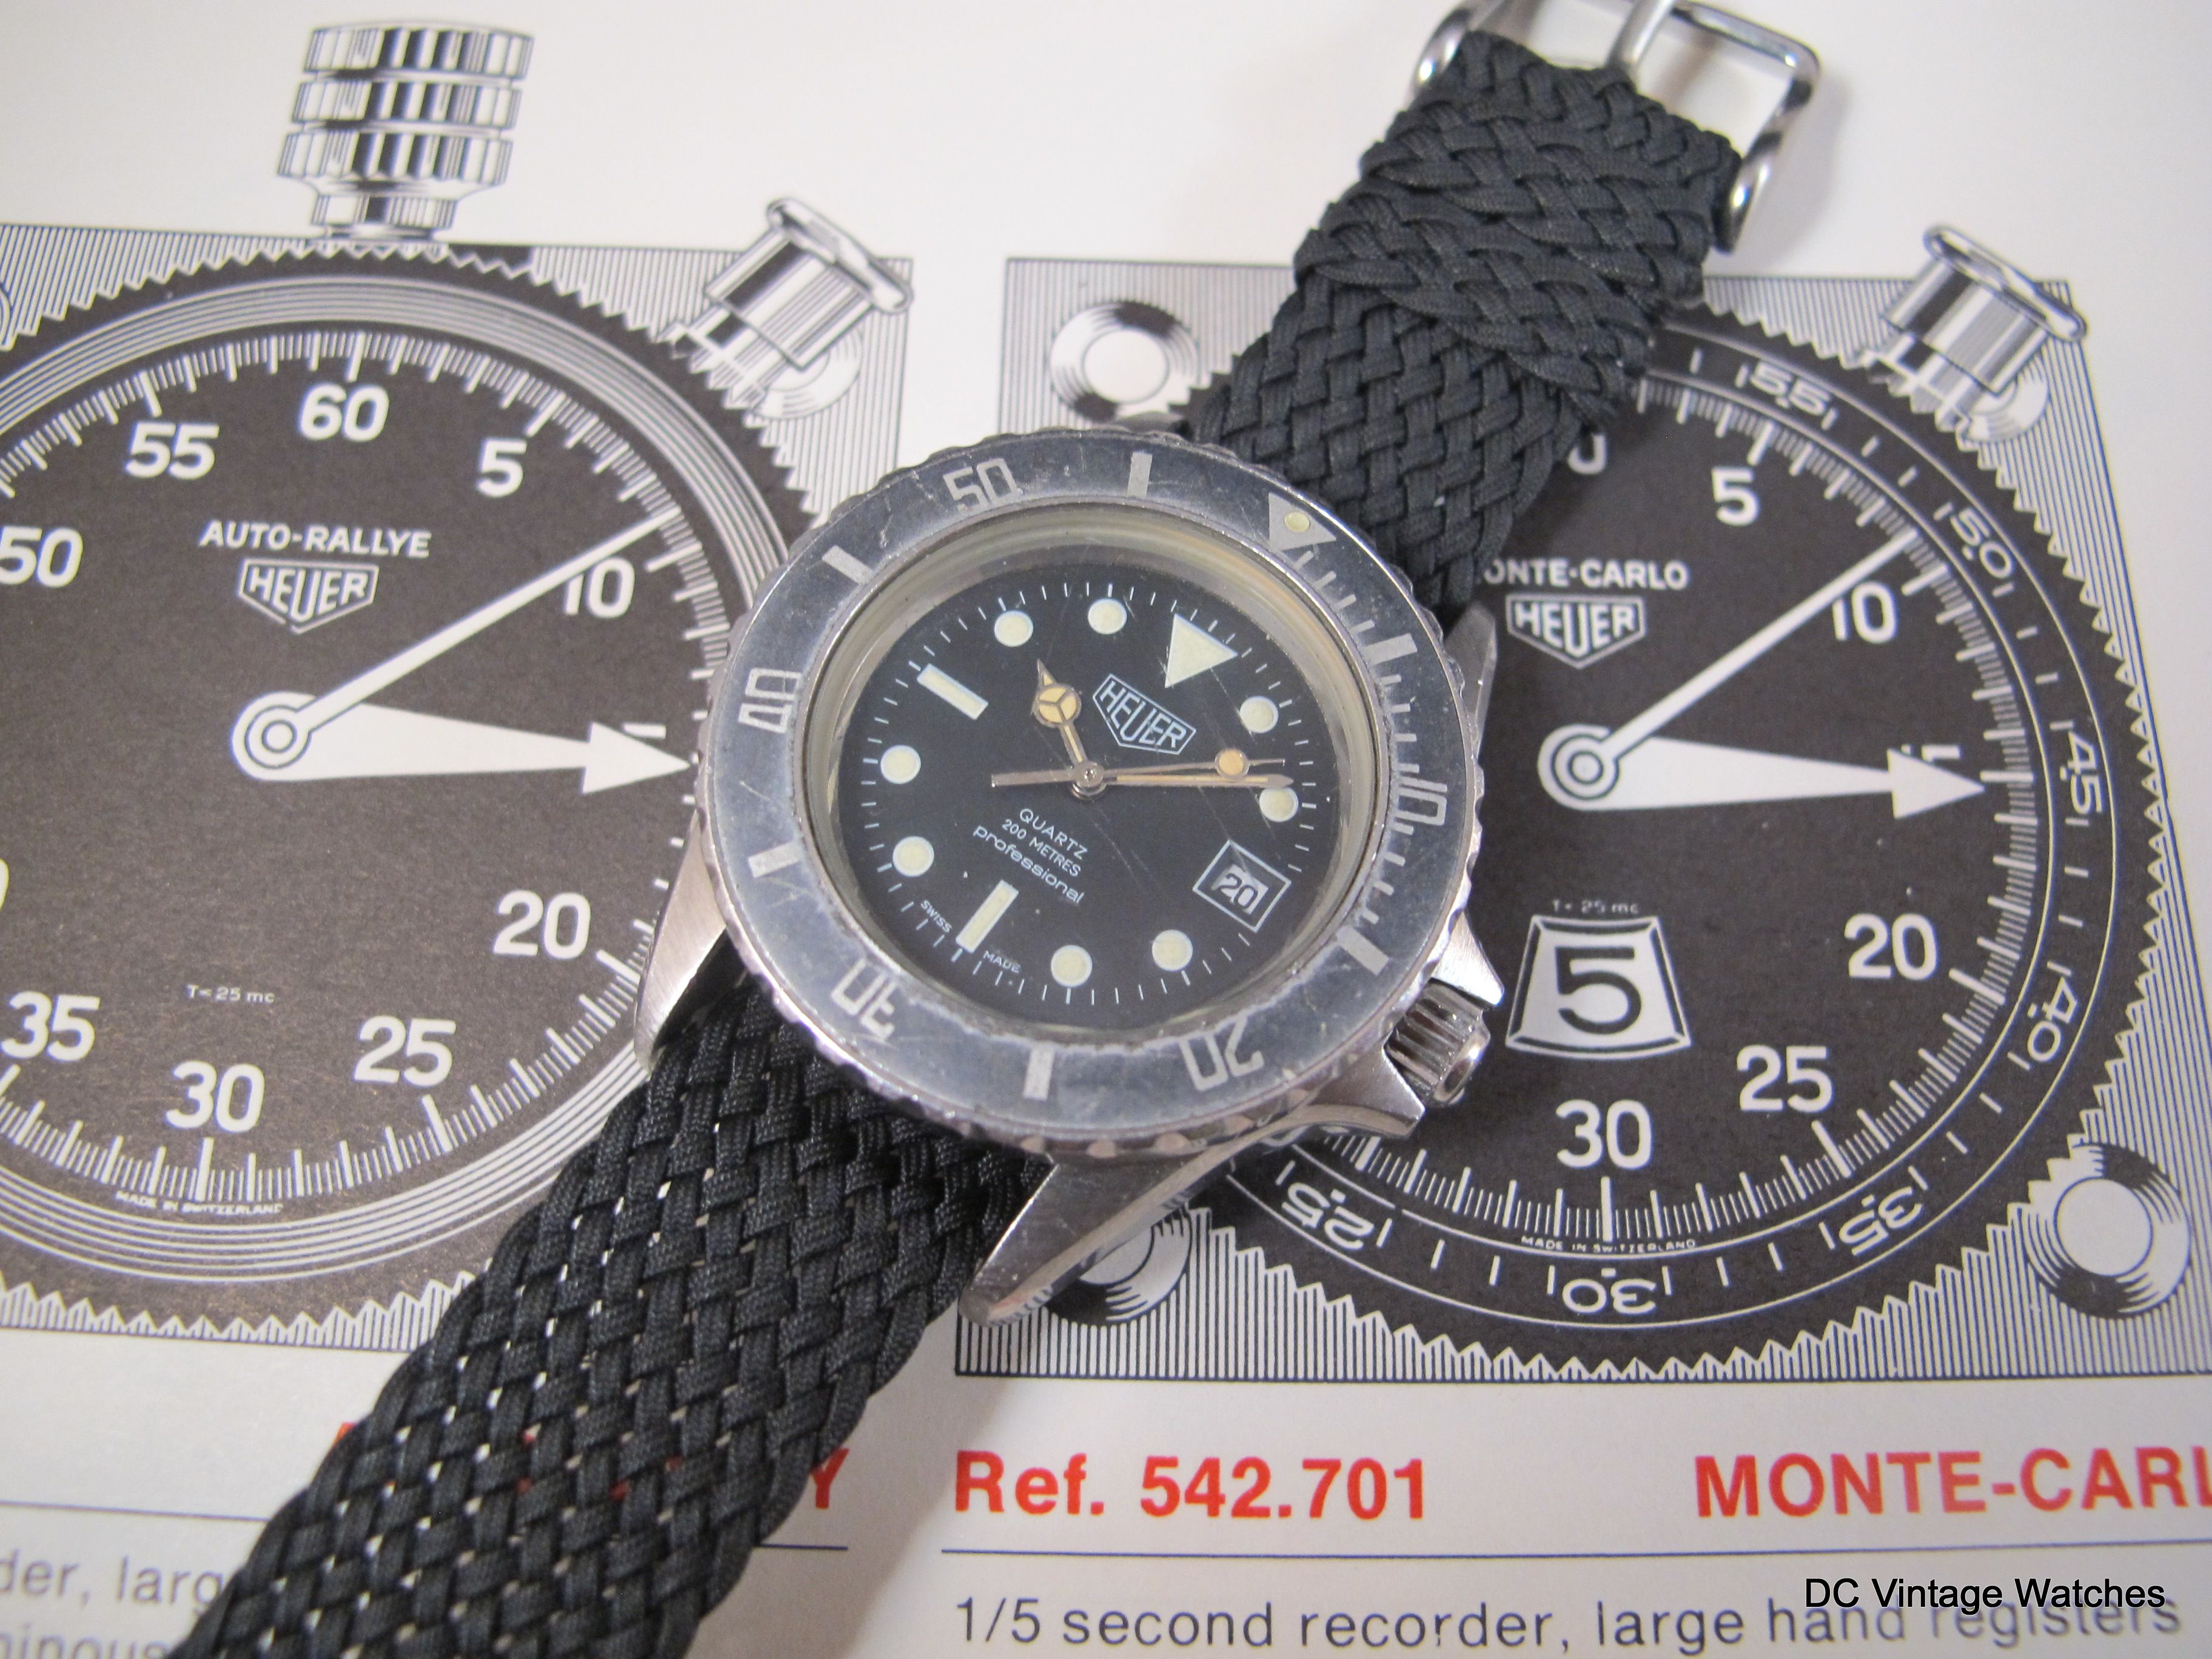 For Sale - 1980's Heuer 980.015 Mid-Sized Diver